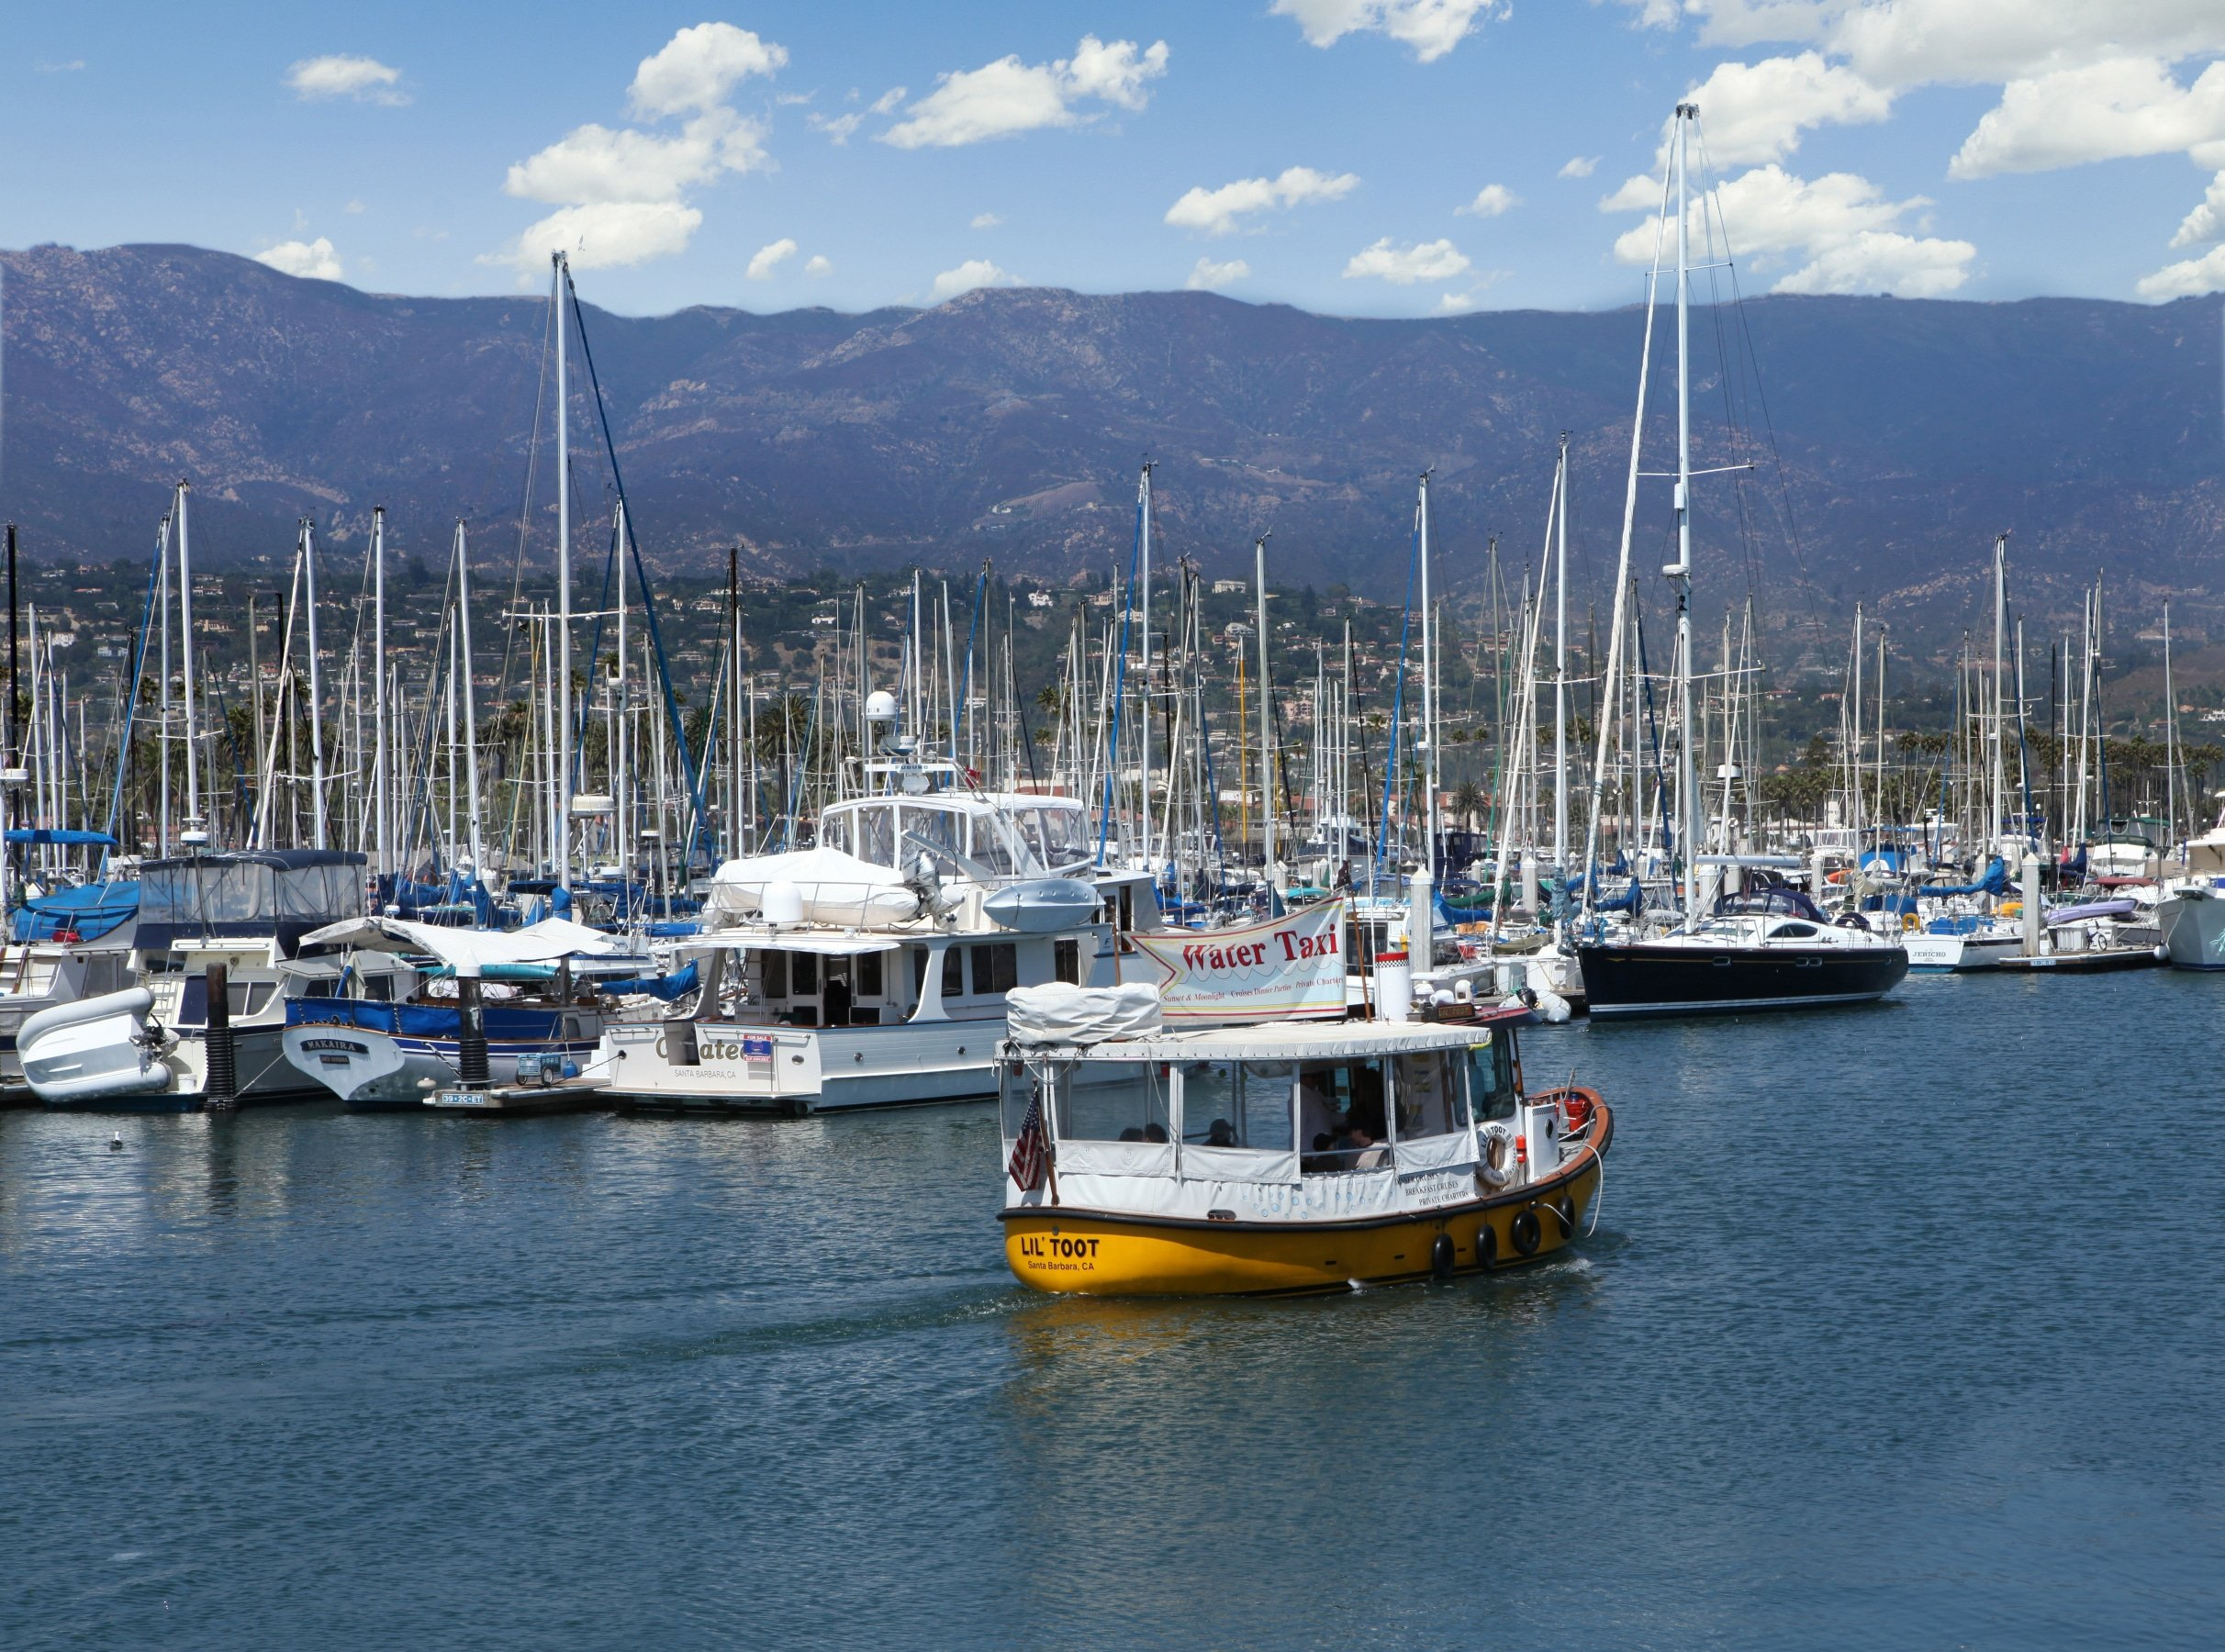 The Lil' Toot Water Taxi sailing in Santa Barbara harbor.